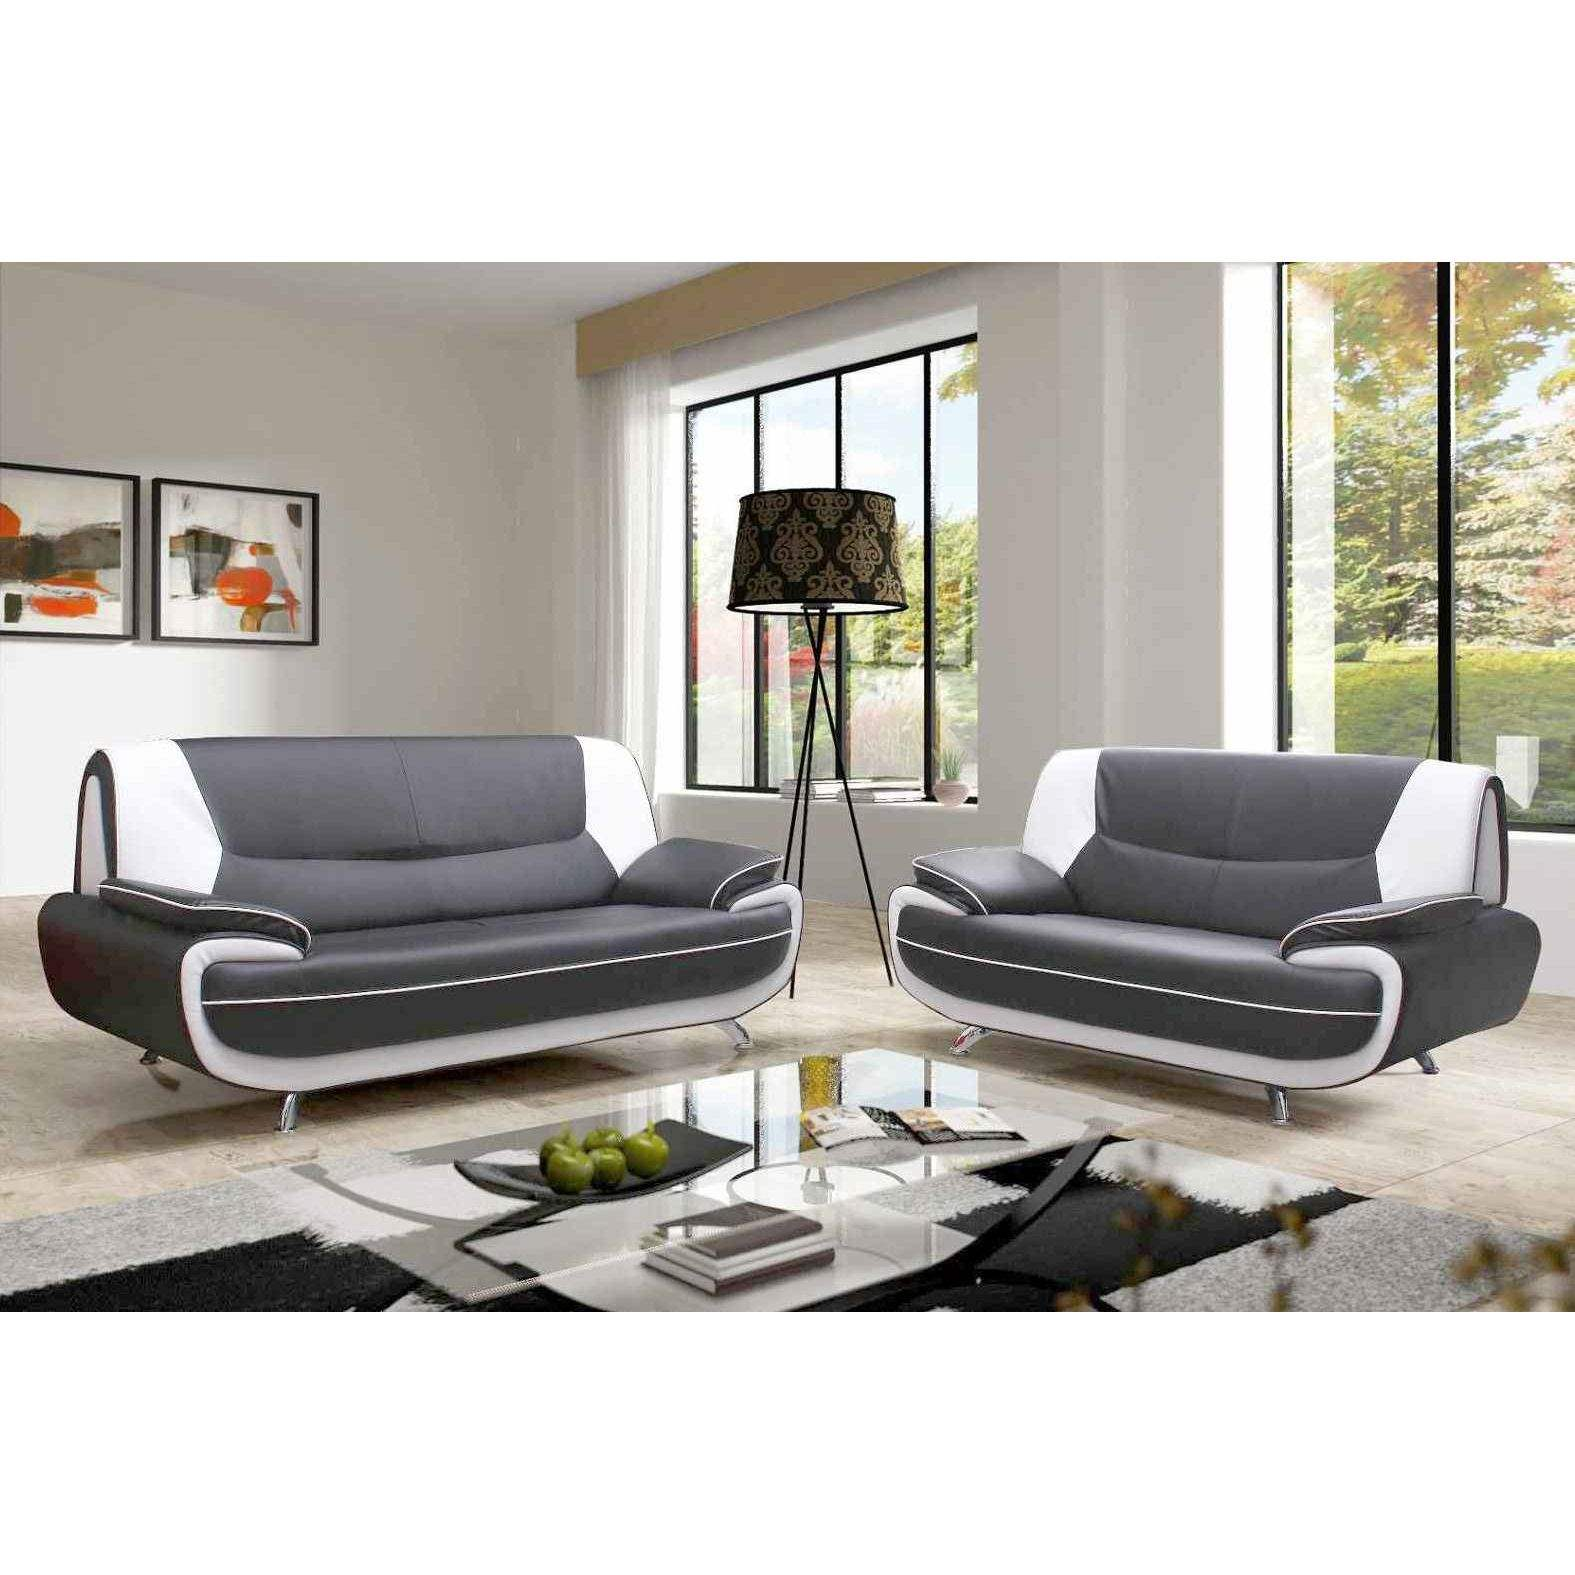 Deco in paris canape 3 2 places gris et blanc marita marita - Salon canape gris ...